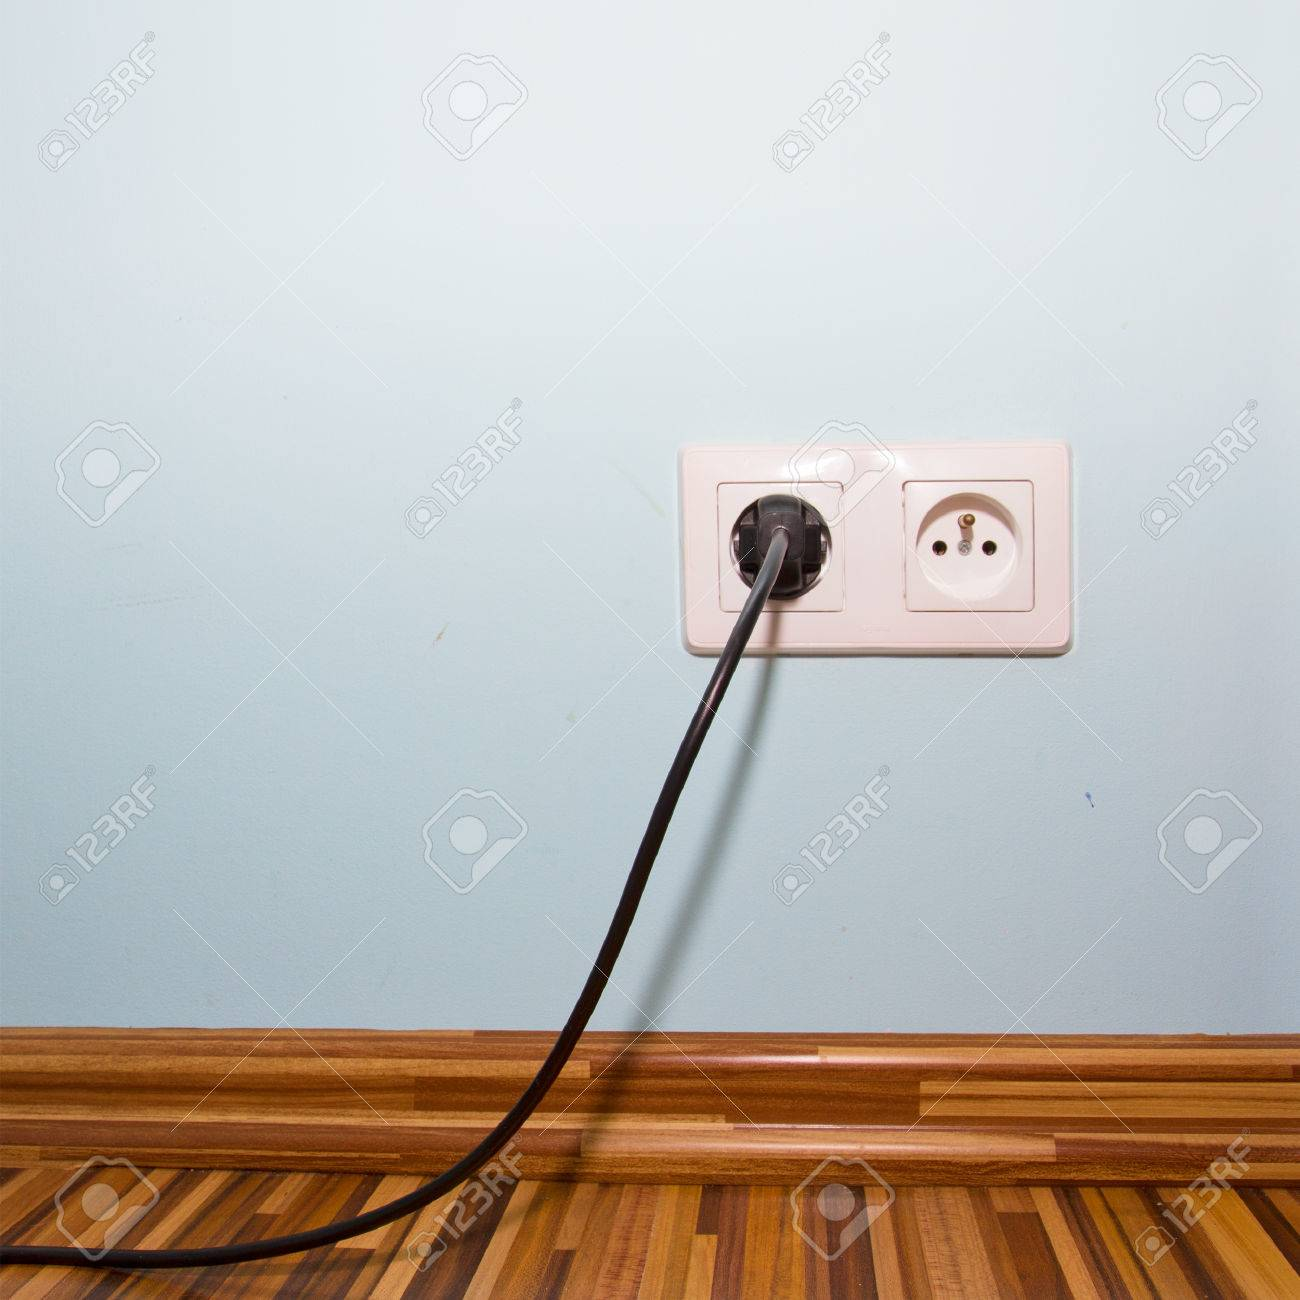 Blue Room Wall With Electric Socket And Plug Stock Photo, Picture ...